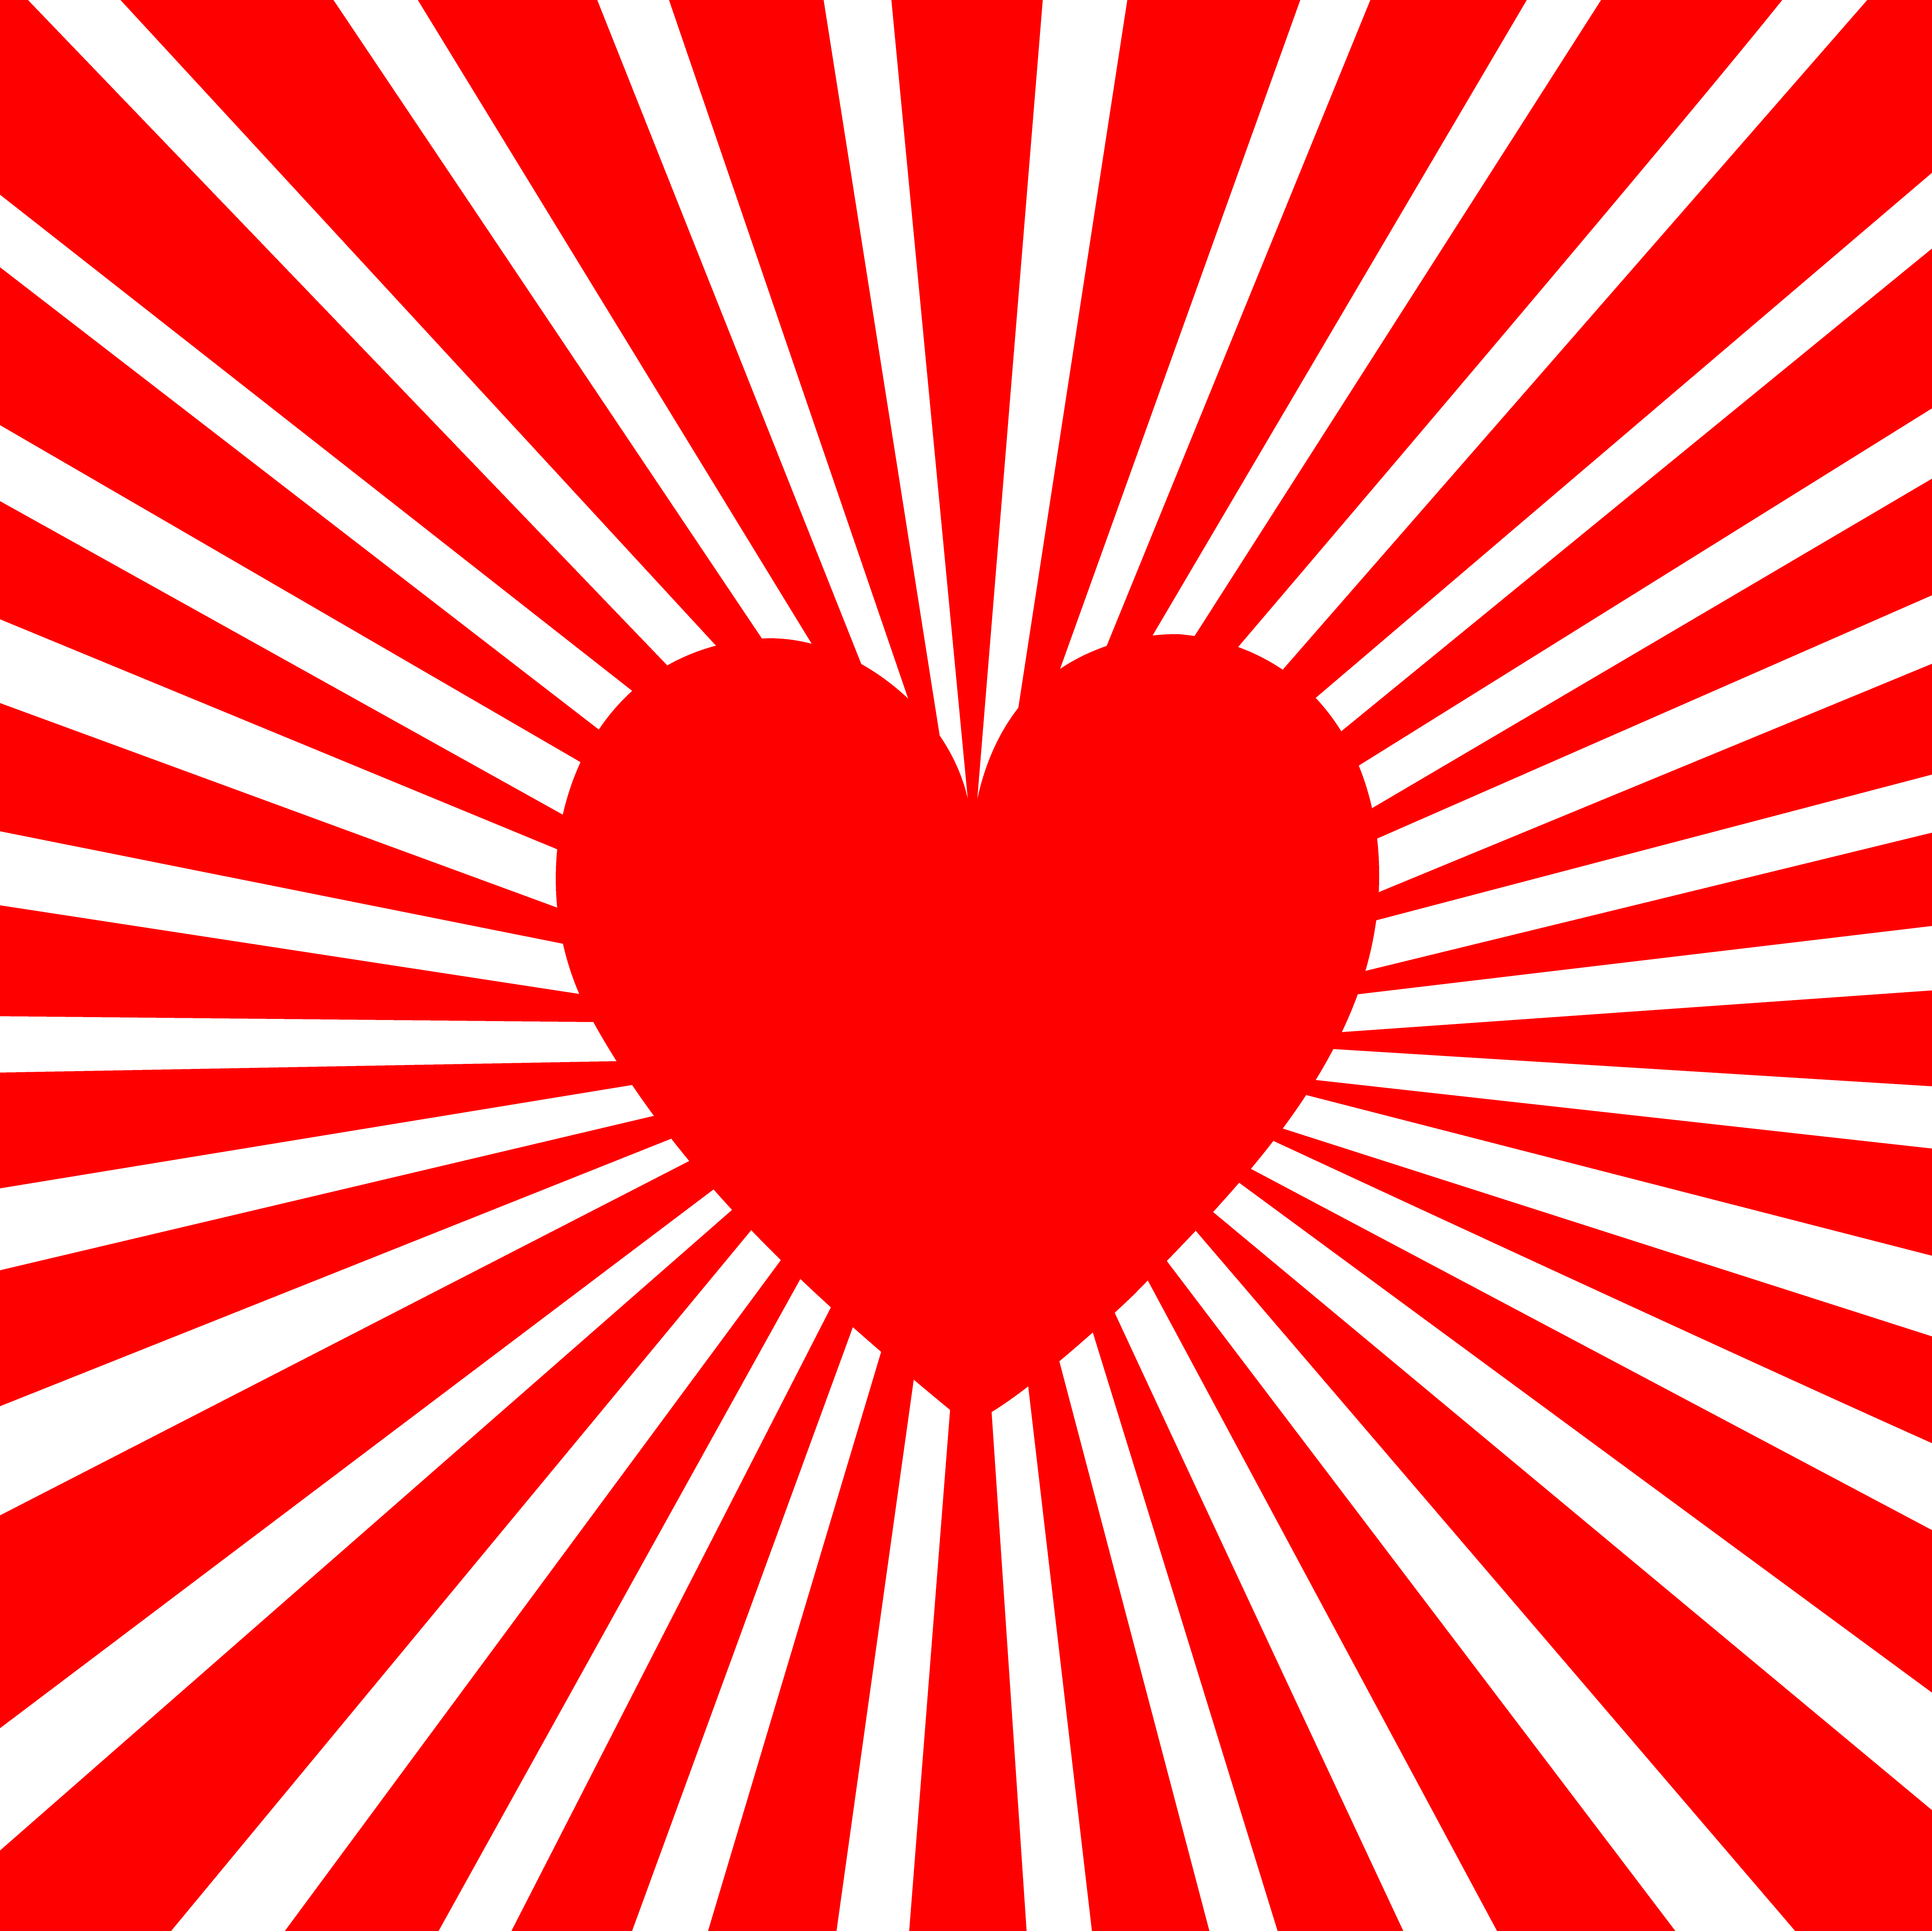 Red Heart With Line Burst - Free Clip Art